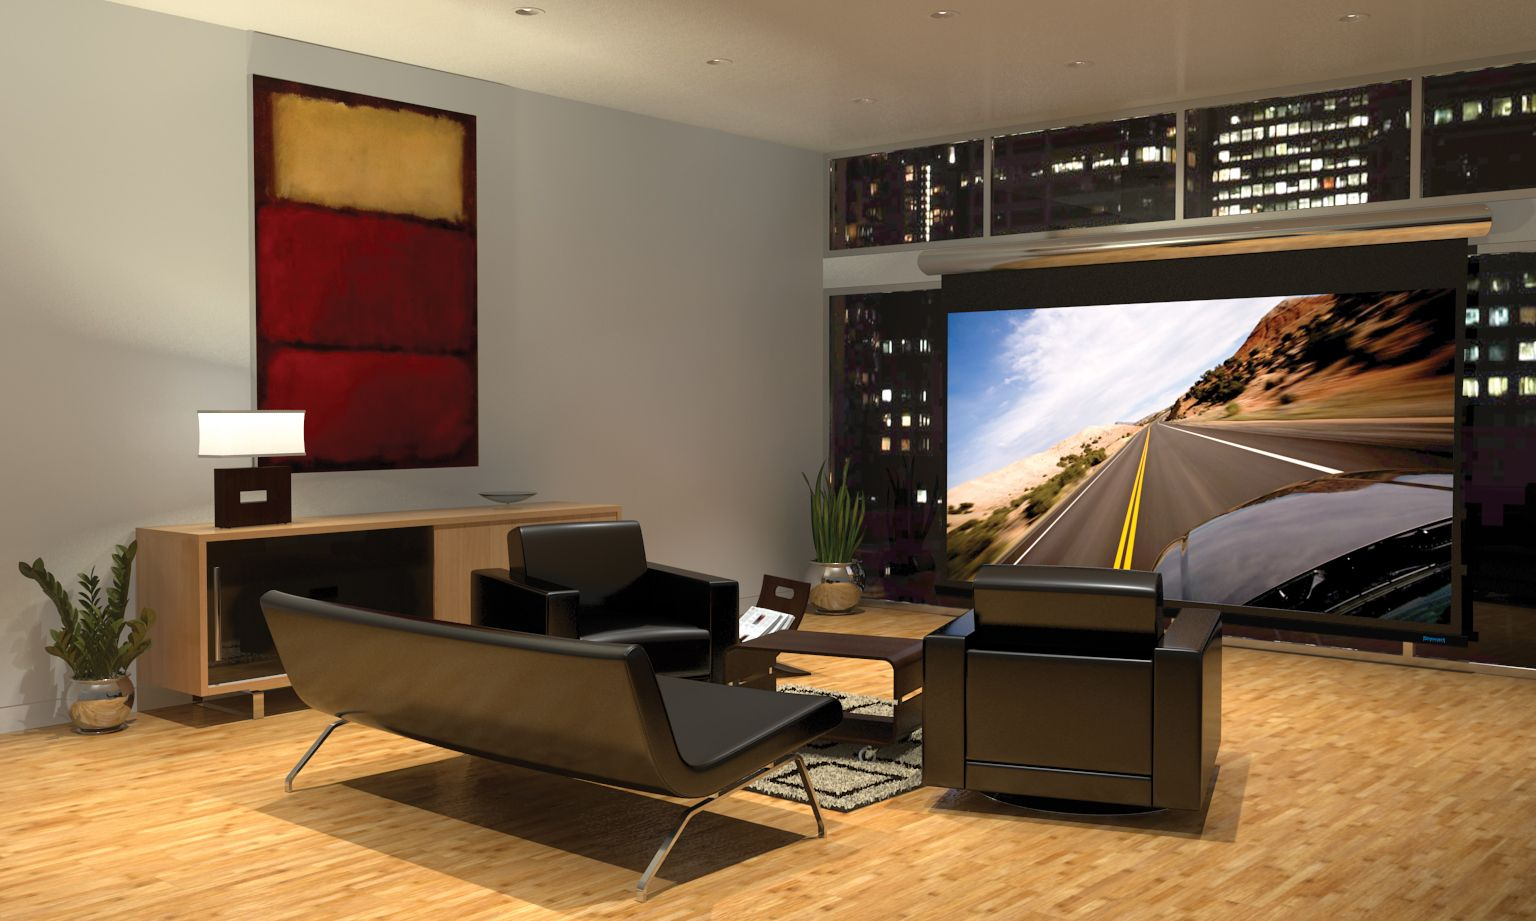 Basement entertainment room - 20 Beautiful Entertainment Room Ideas